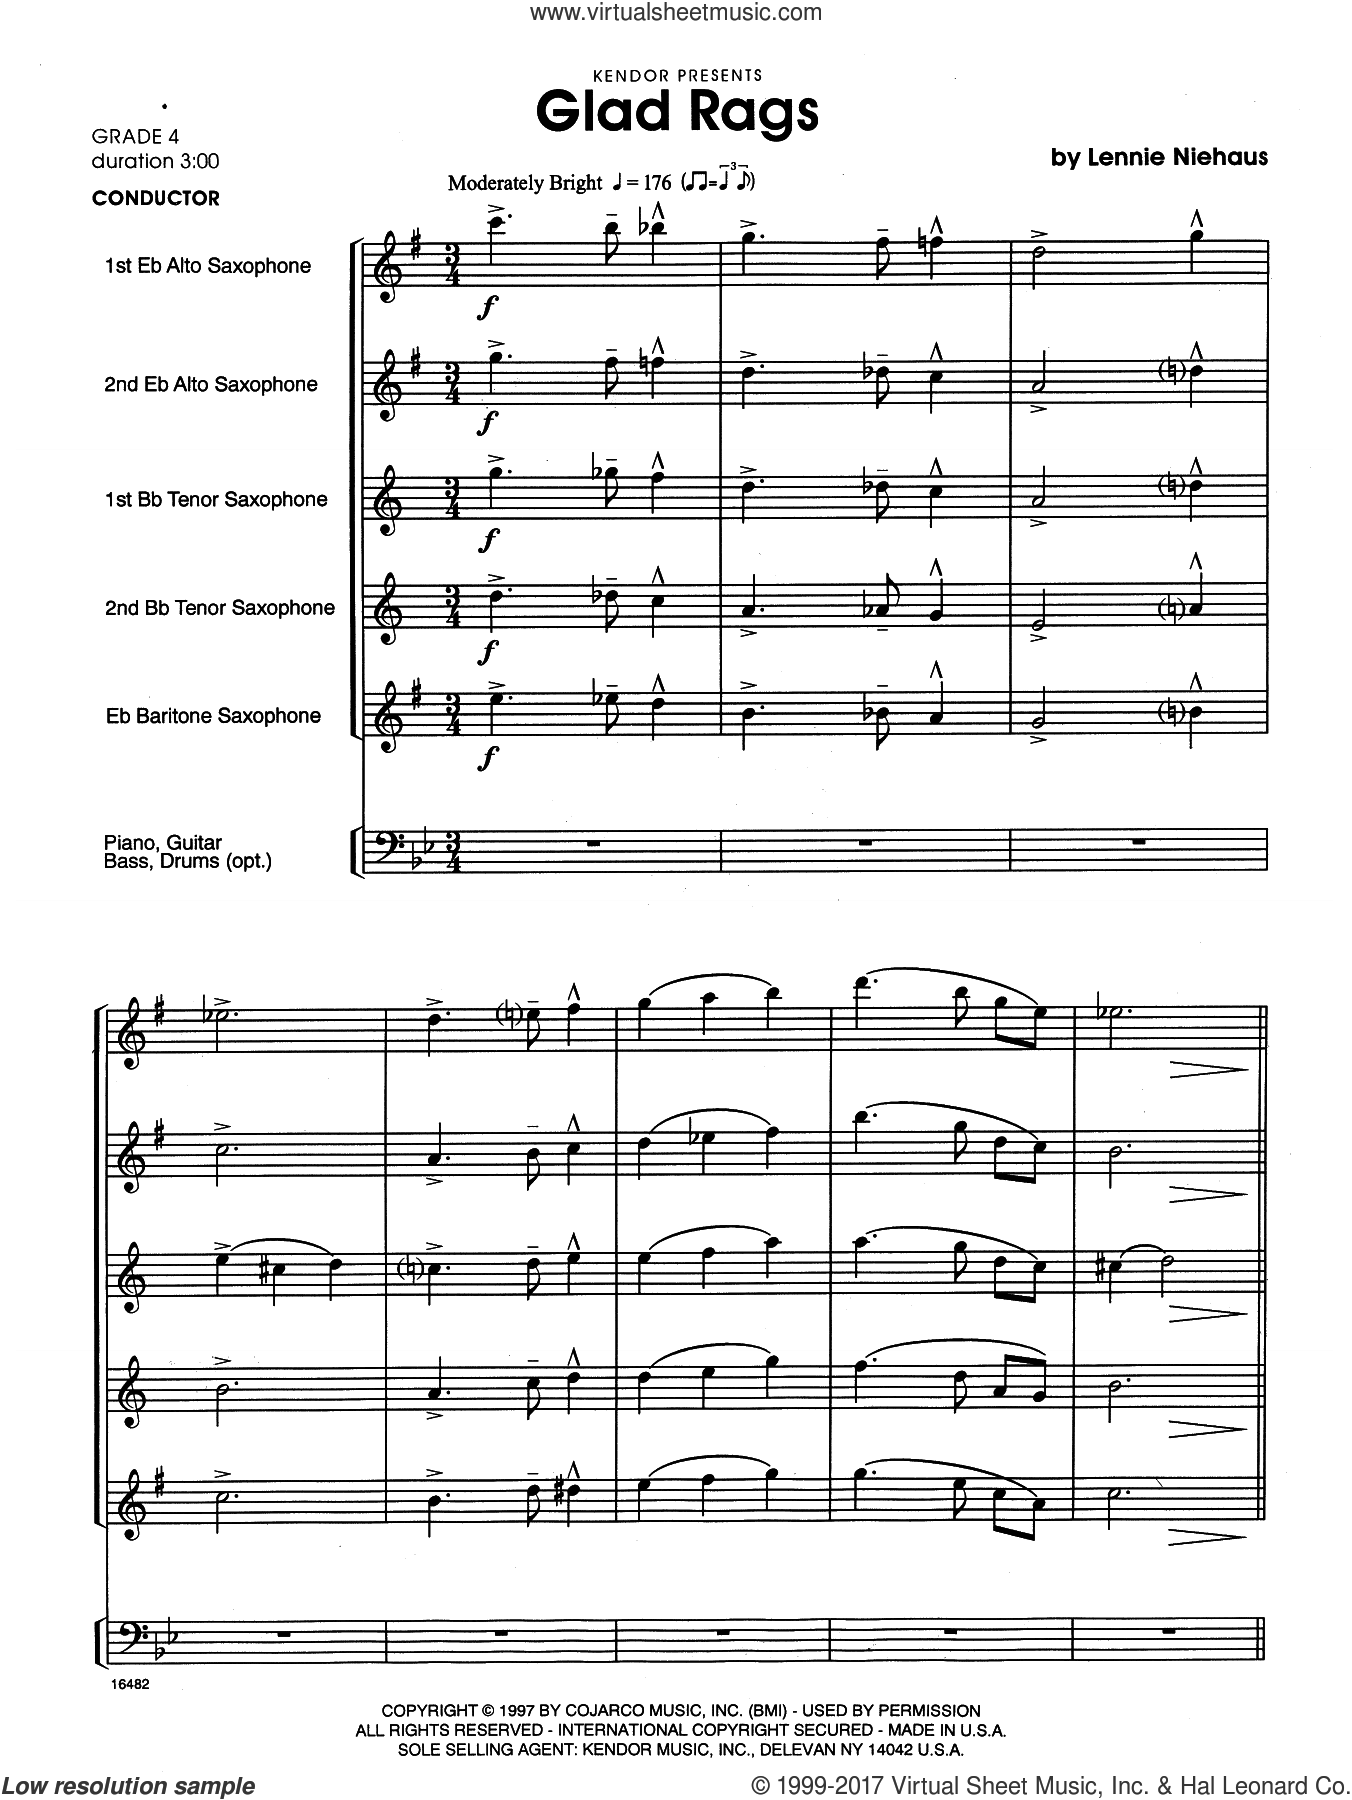 Glad Rags (COMPLETE) sheet music for saxophone quintet by Lennie Niehaus, intermediate skill level